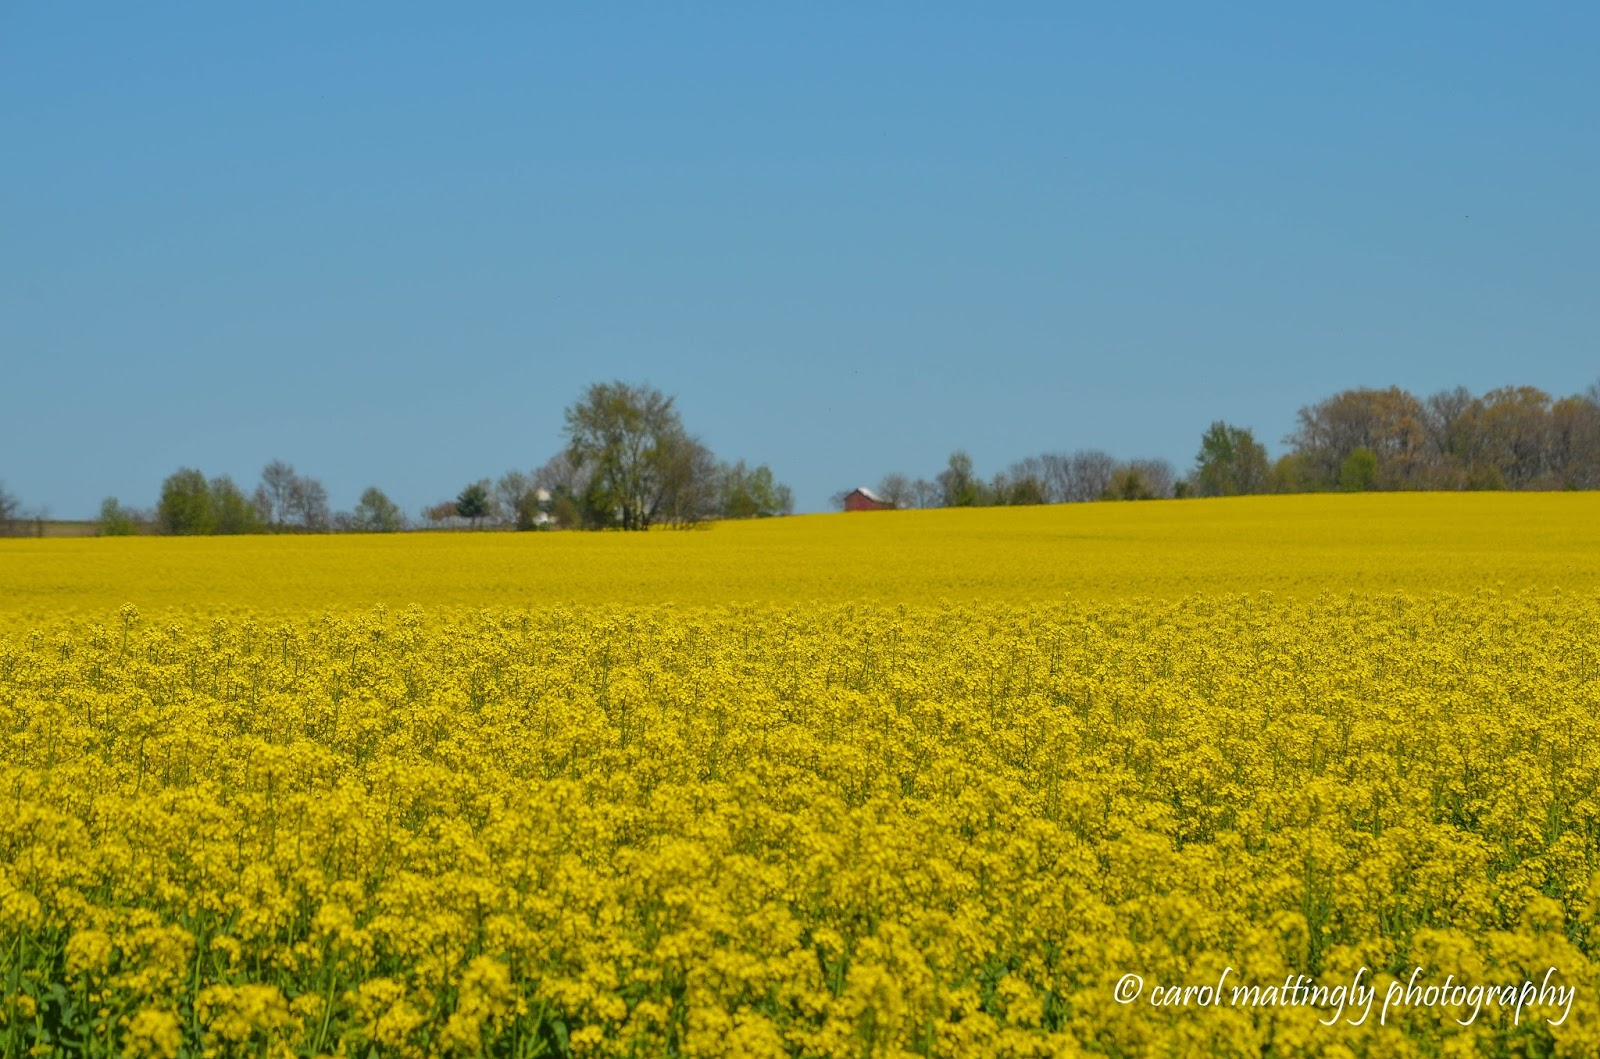 Carol mattingly photography canola fields of northern tennessee welcome to the farms of northern tennessee where the canola seed is one of the main crops grown here within a few short miles of interstate 65 mightylinksfo